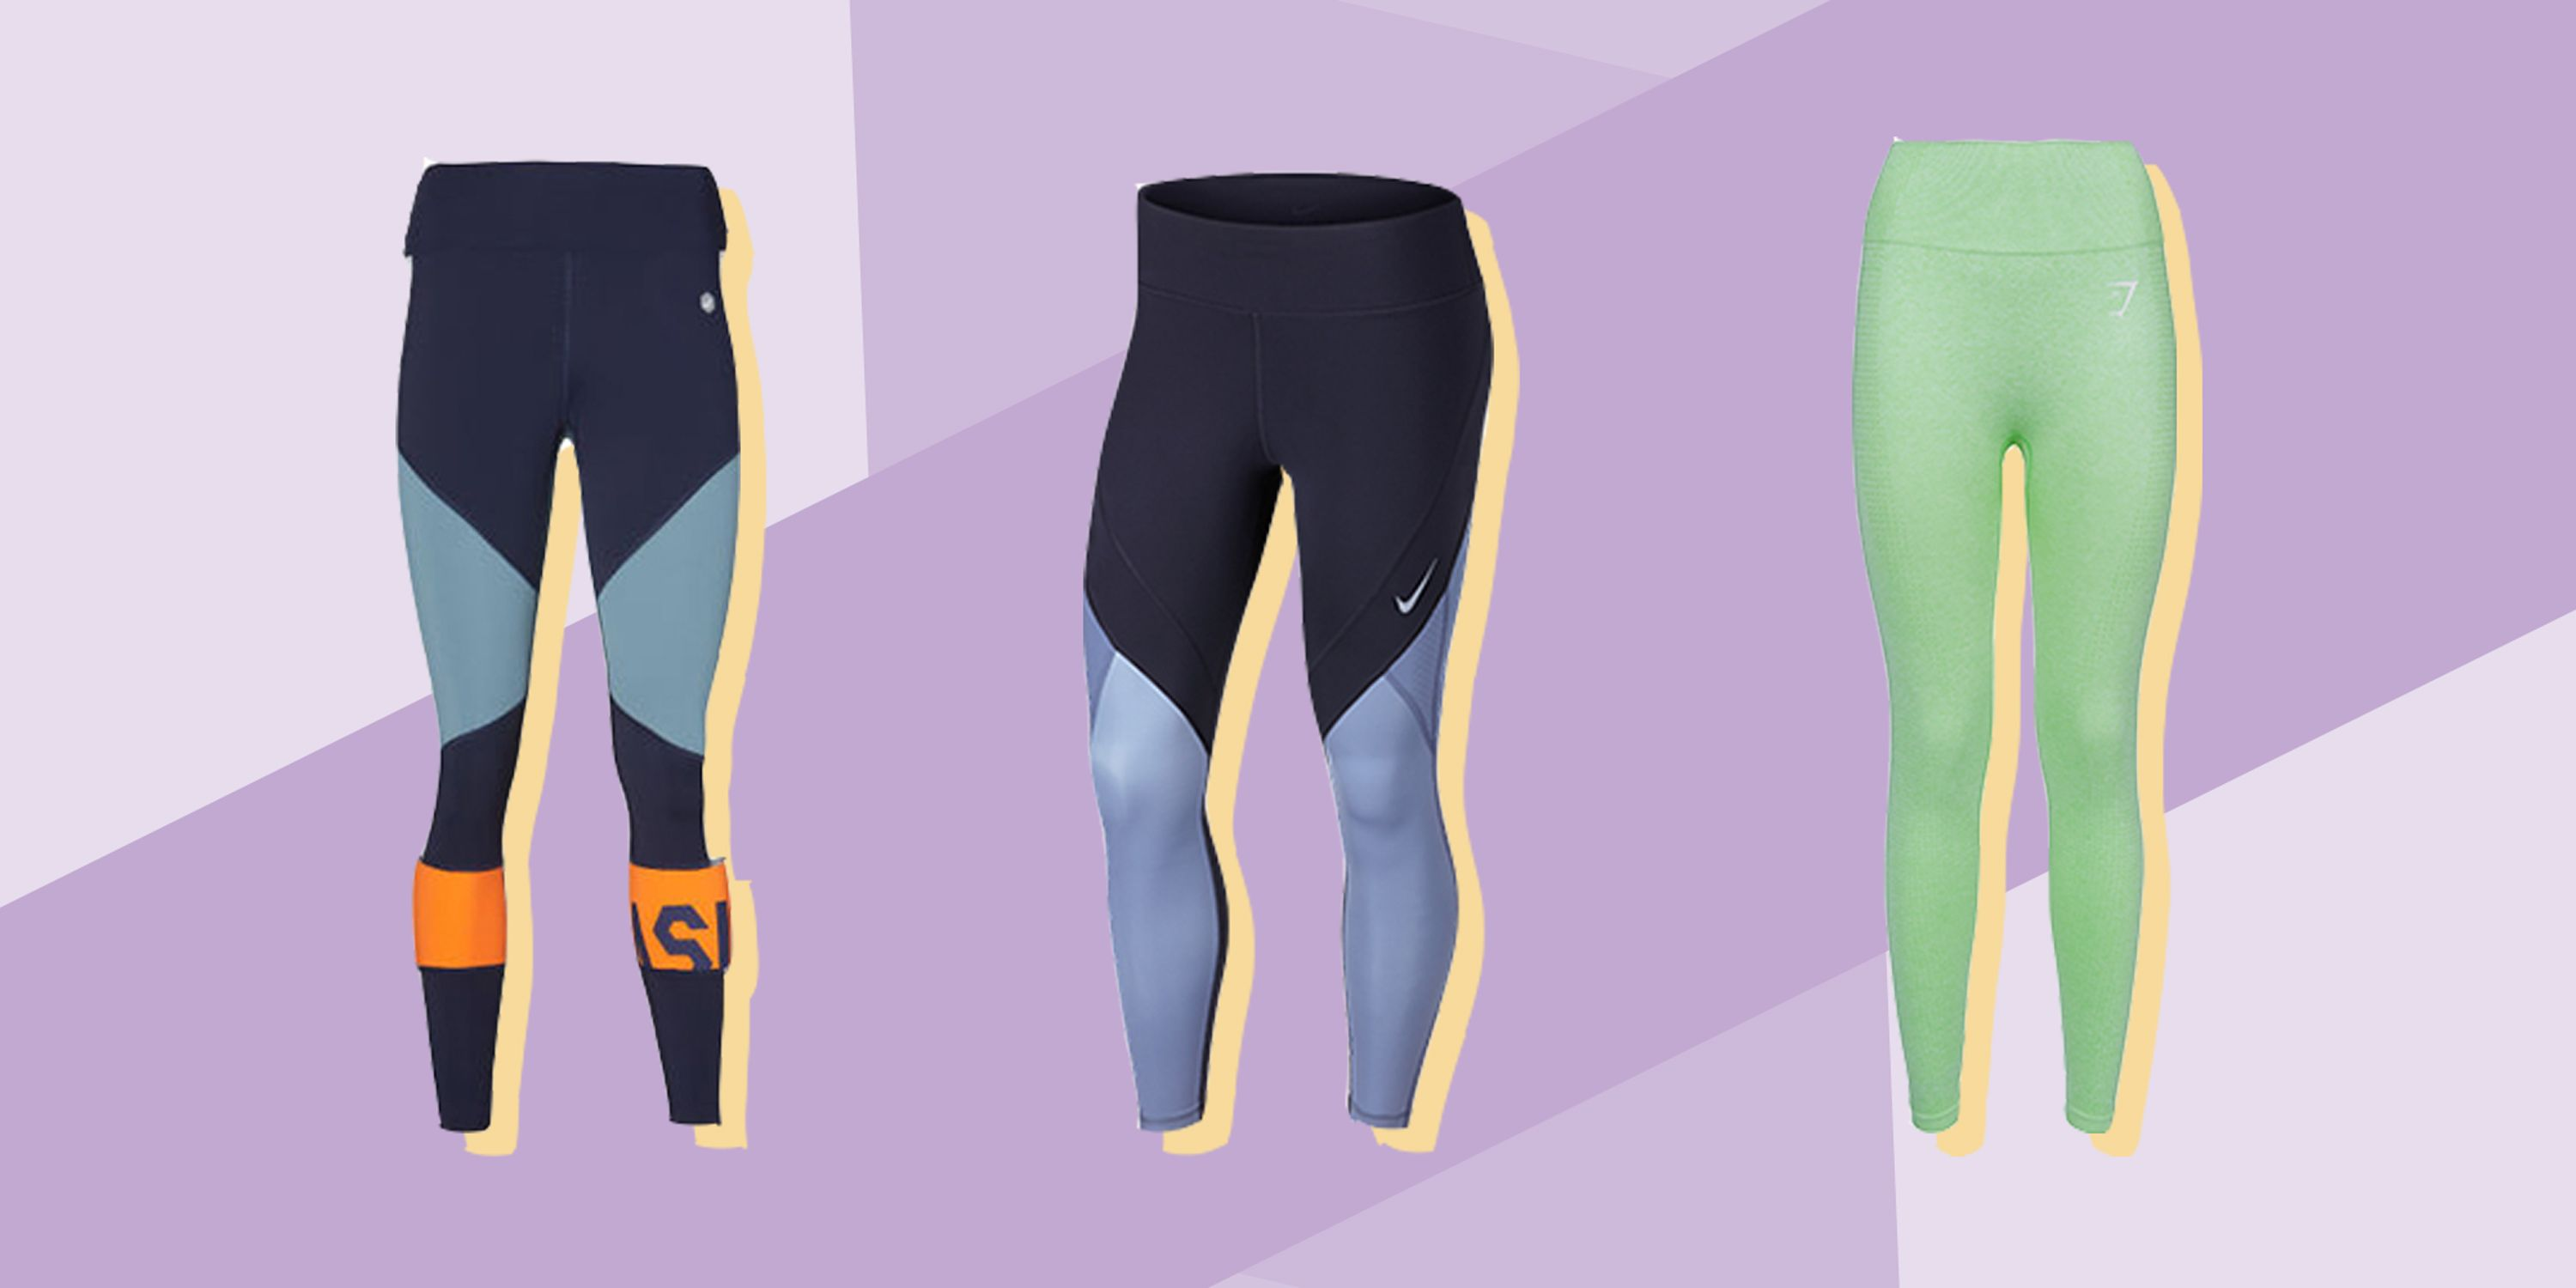 f6e0b0e142 Best Gym Leggings | 15 for Your Sweatiest Workout